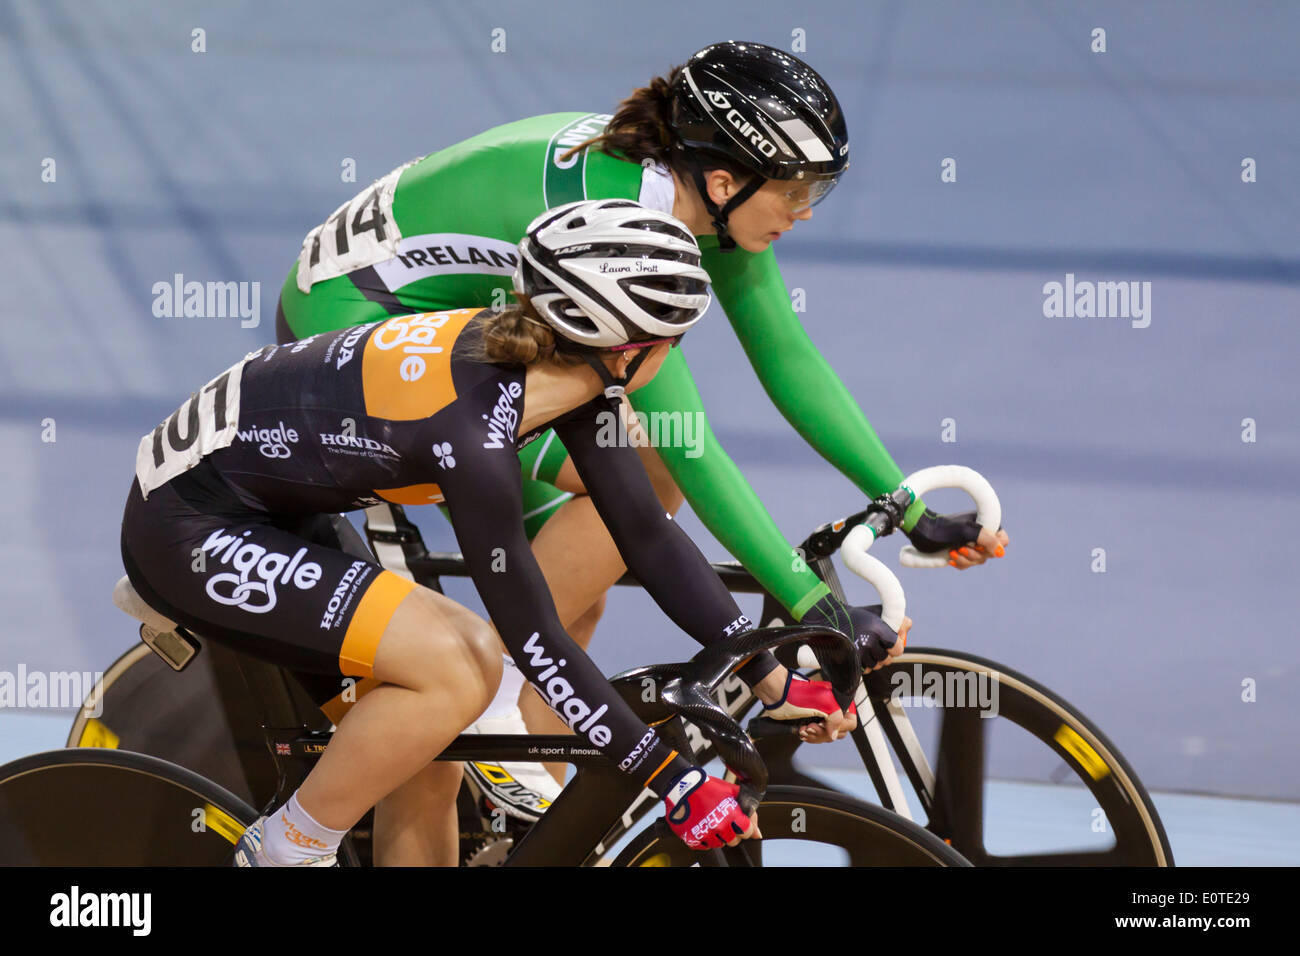 Laura Kenny (Laura Trott) (f) und Caroline Ryan (b) in der Frauen Omnium auf Revolution 5 2014, Lee Valley Velopark konkurrieren. Stockbild